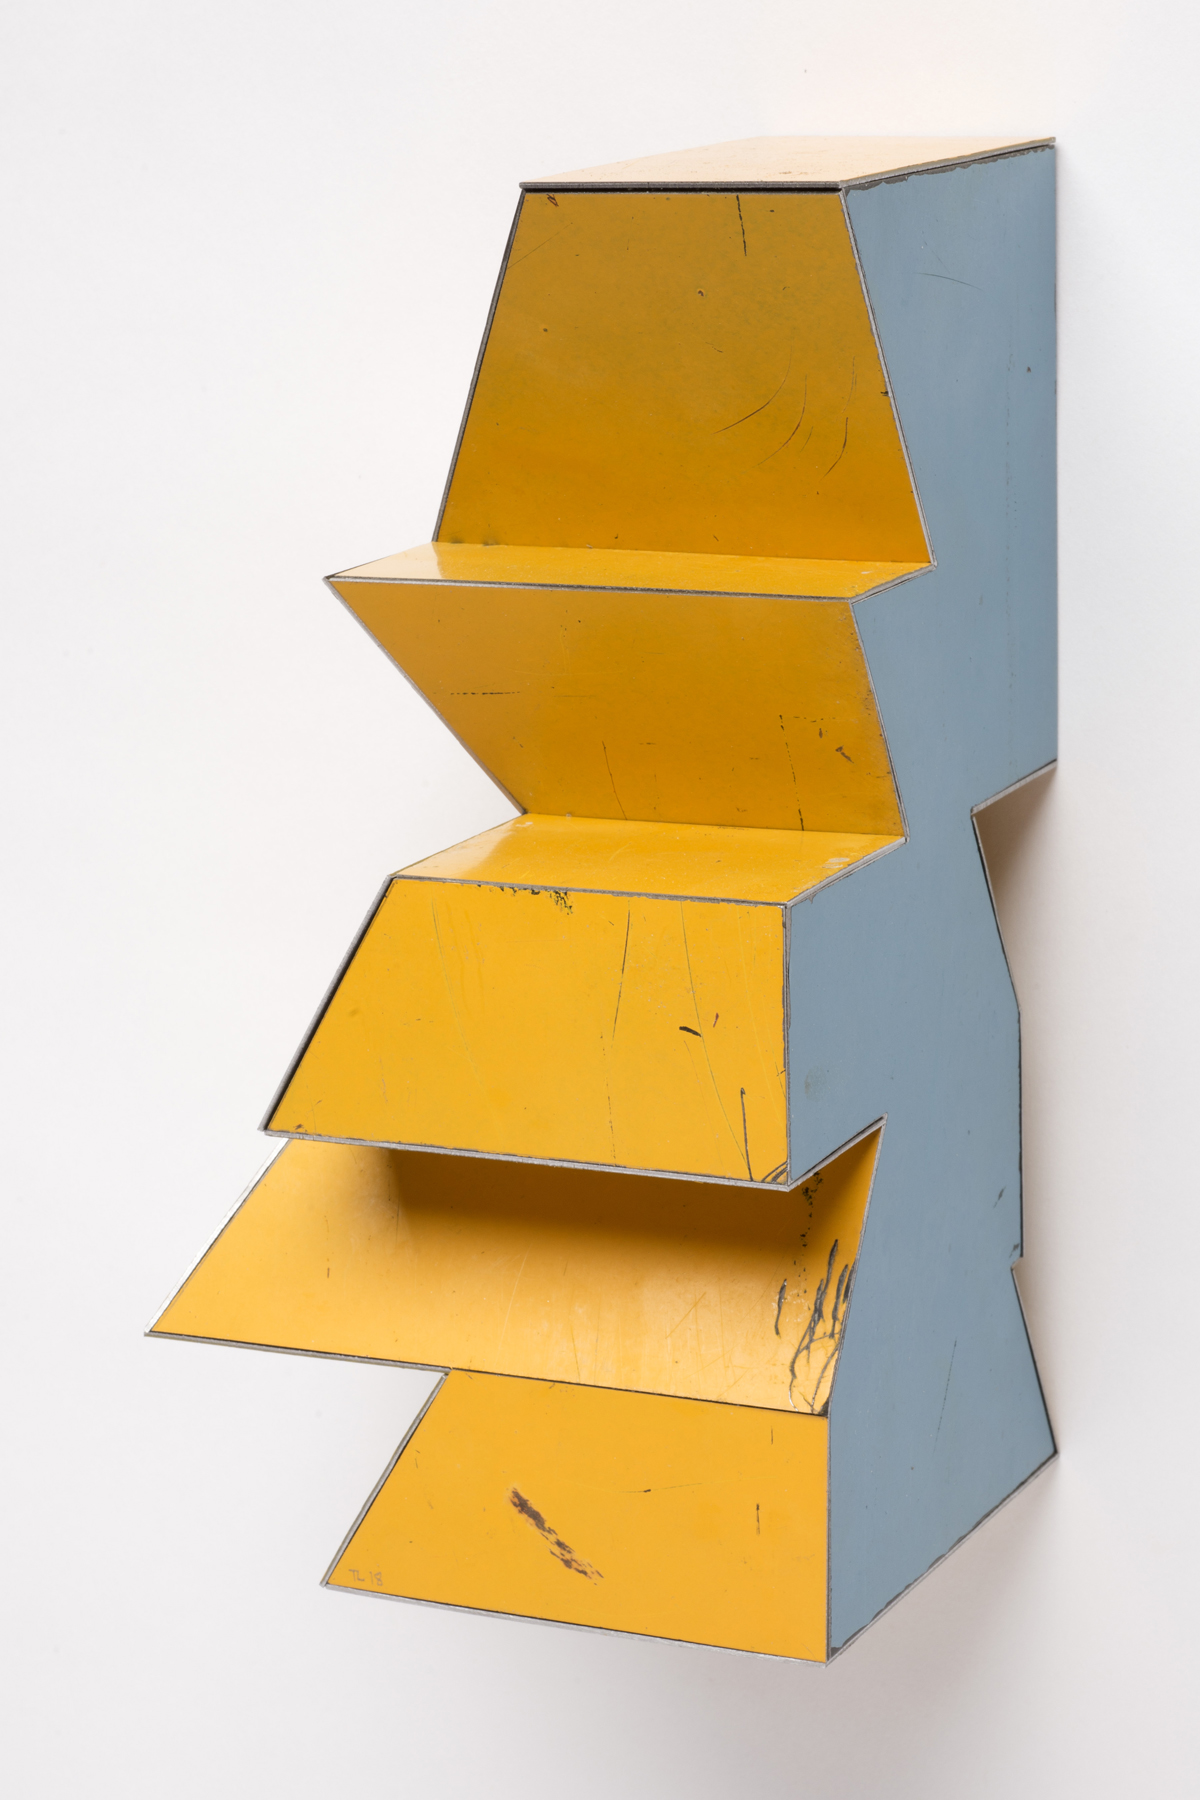 False Fact, 8 x 4.25 x 4.25 inches / 20.3 x 10.8 x 10.8 cm, salvage steel, marine-grade plywood, silicone, vulcanized rubber, hardware, 2018